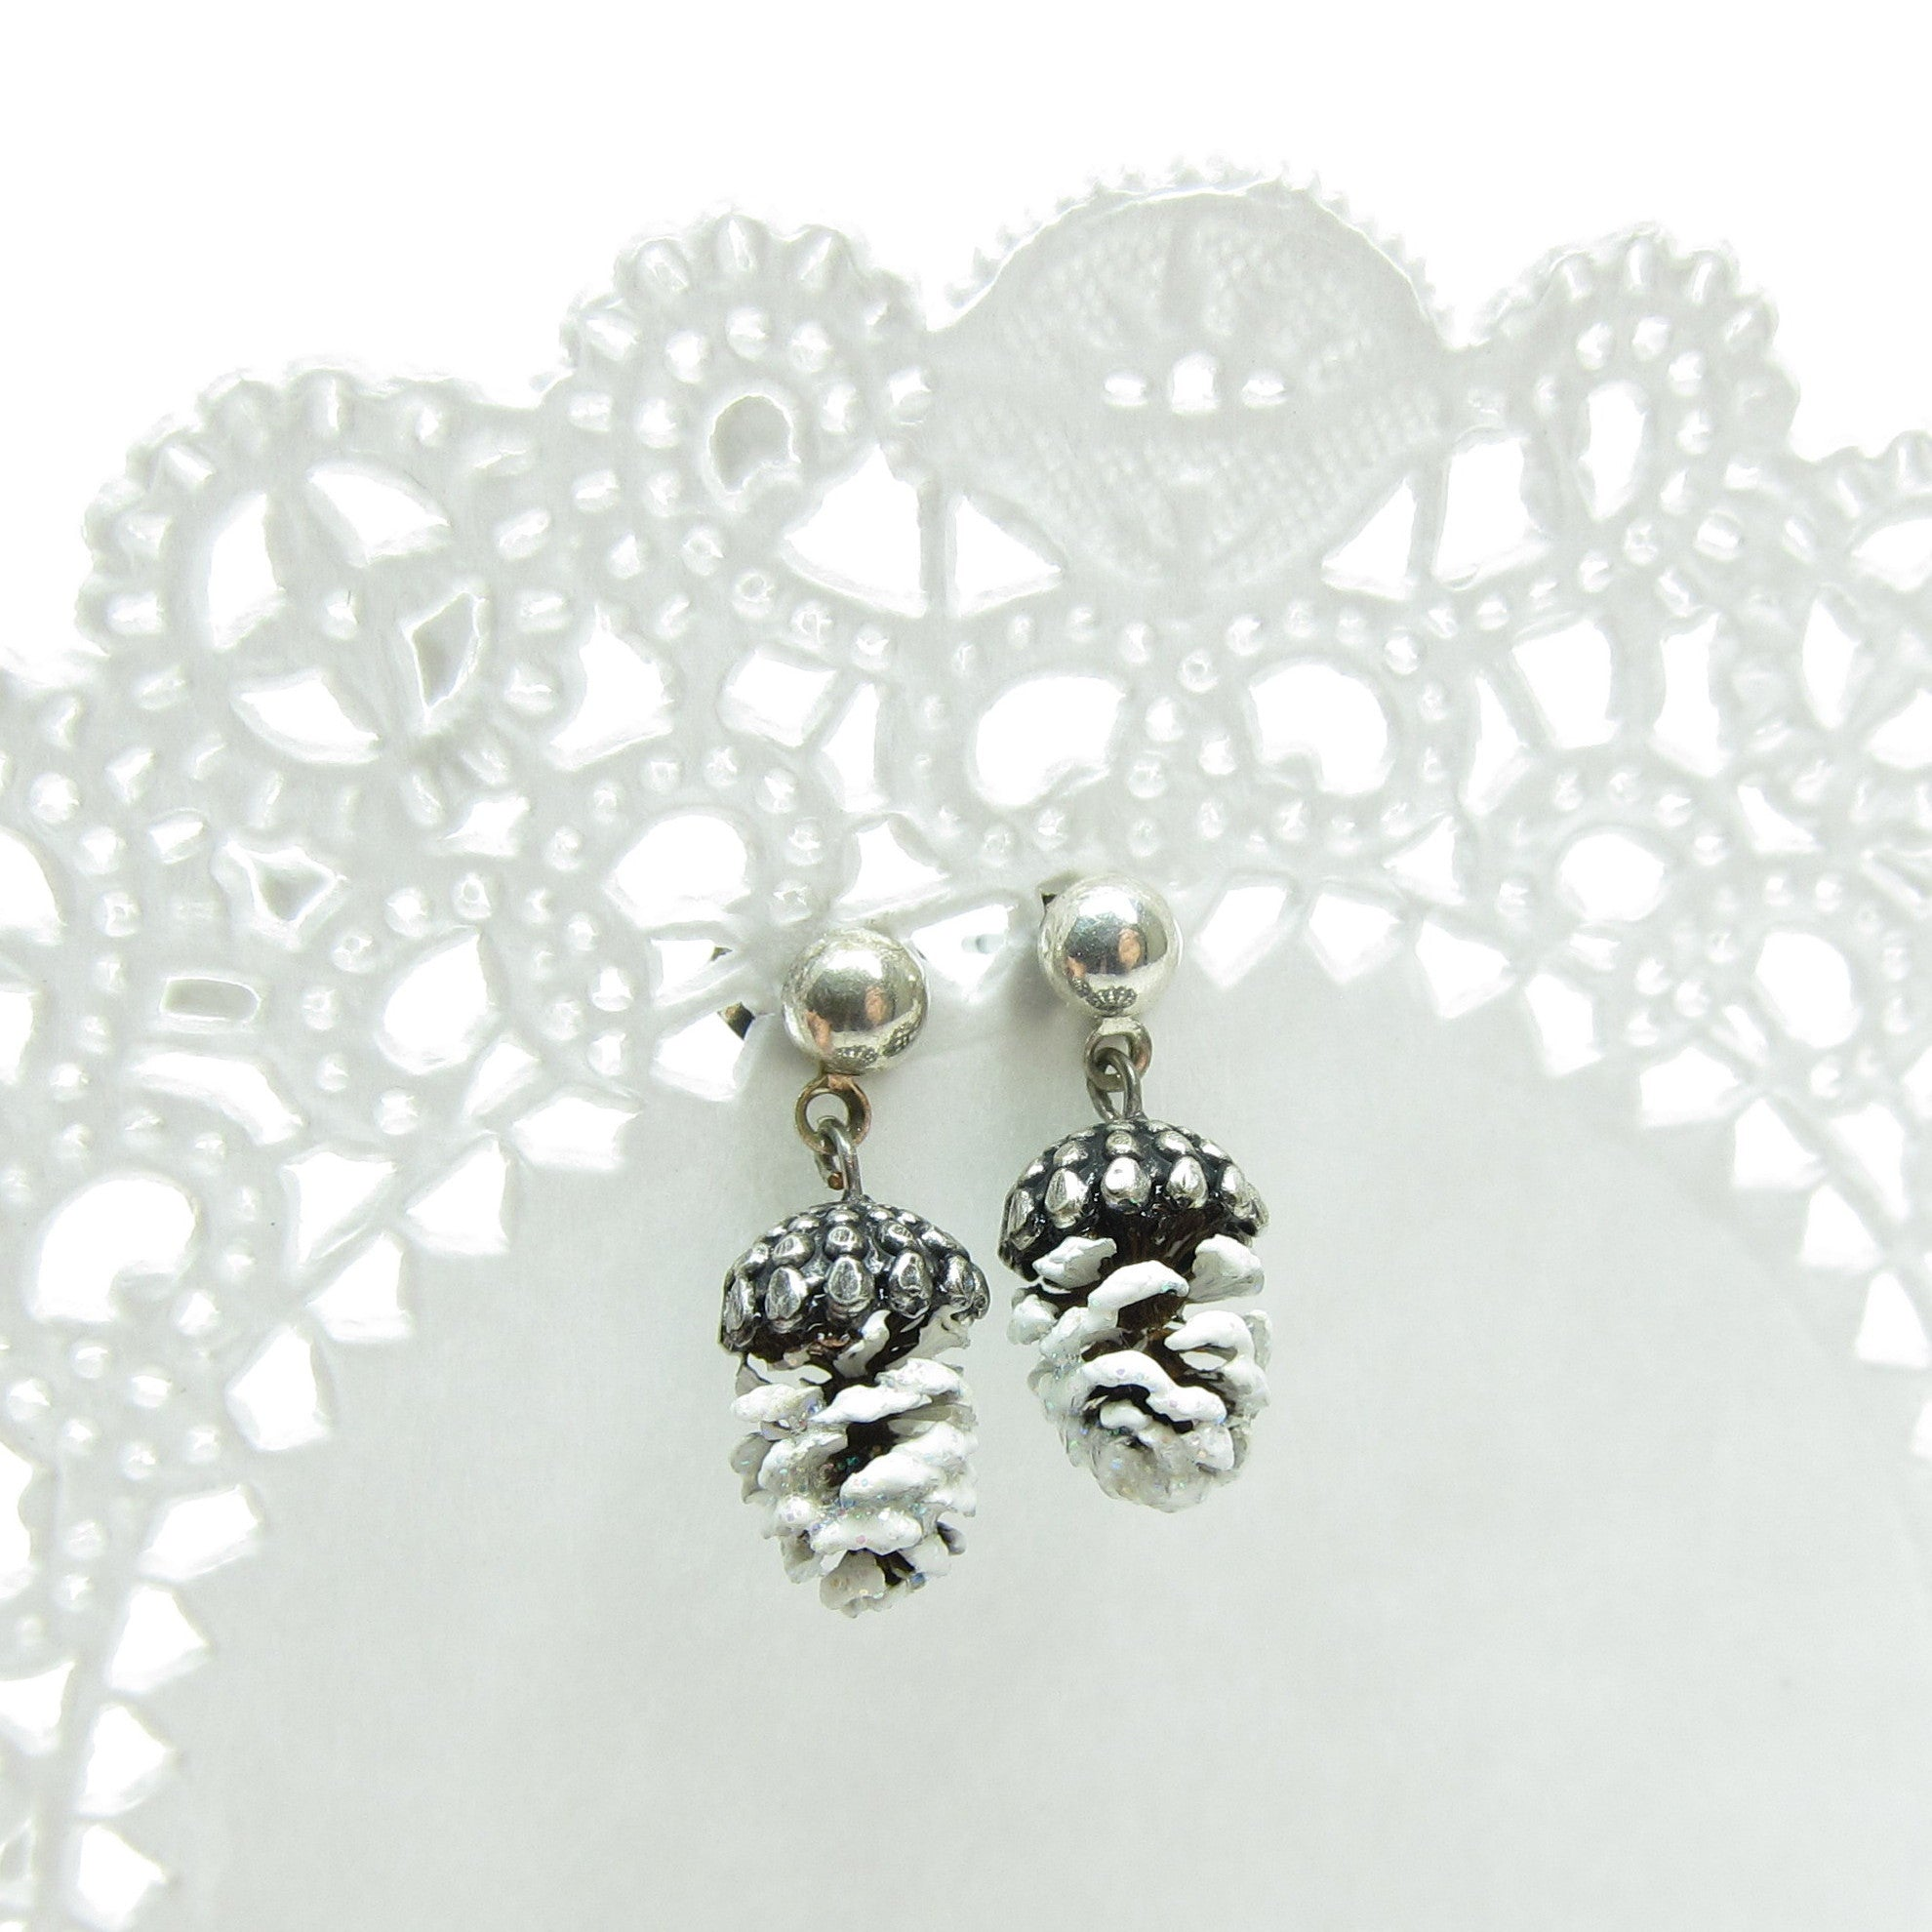 Miniature Pine Cone Earrings with Real Pinecones